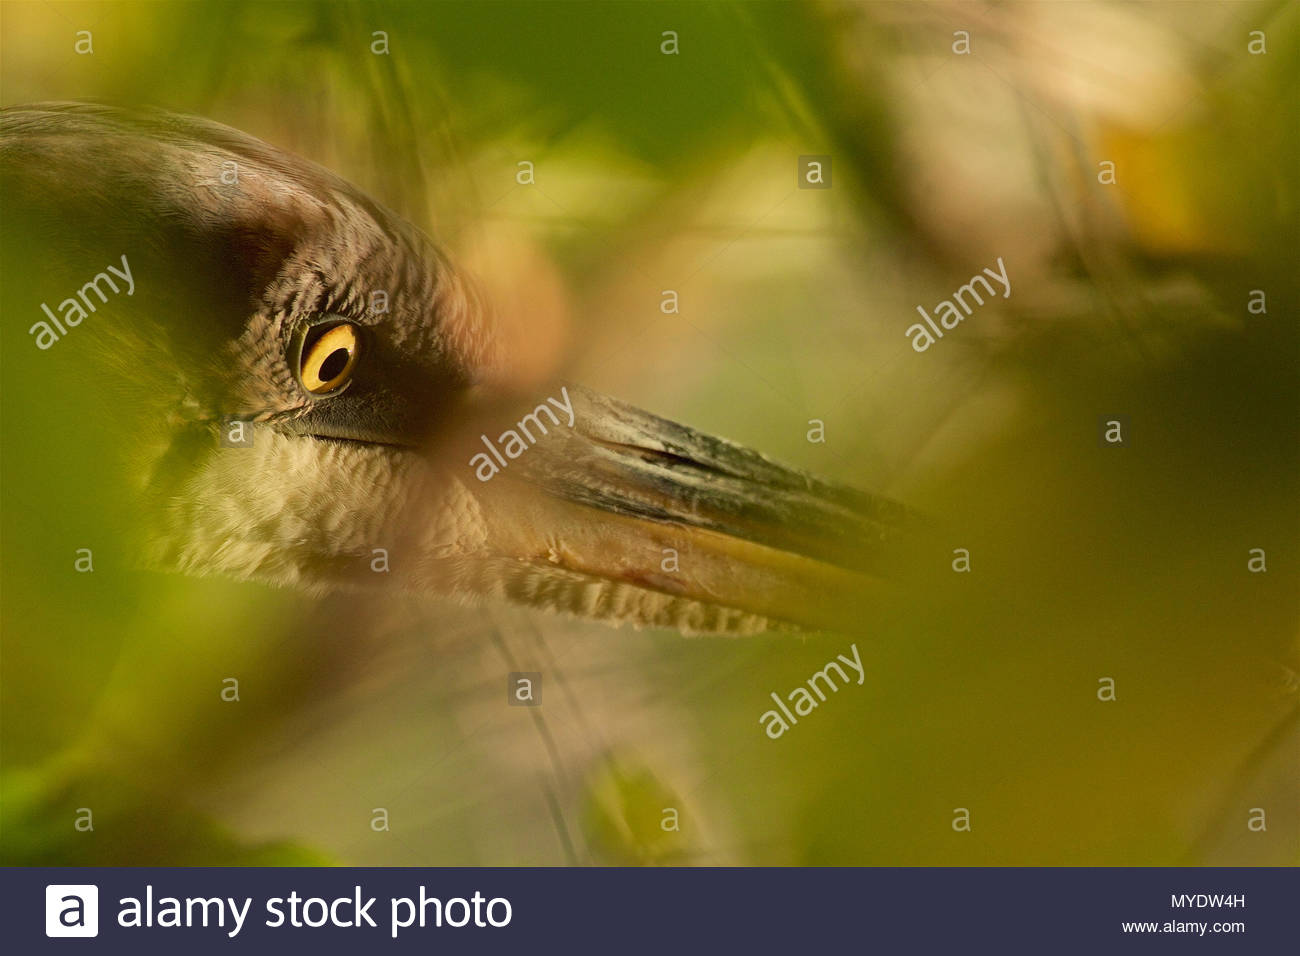 Close-up of a Great Blue Heron, Ardea herodias, hunting among green foliage. - Stock Image